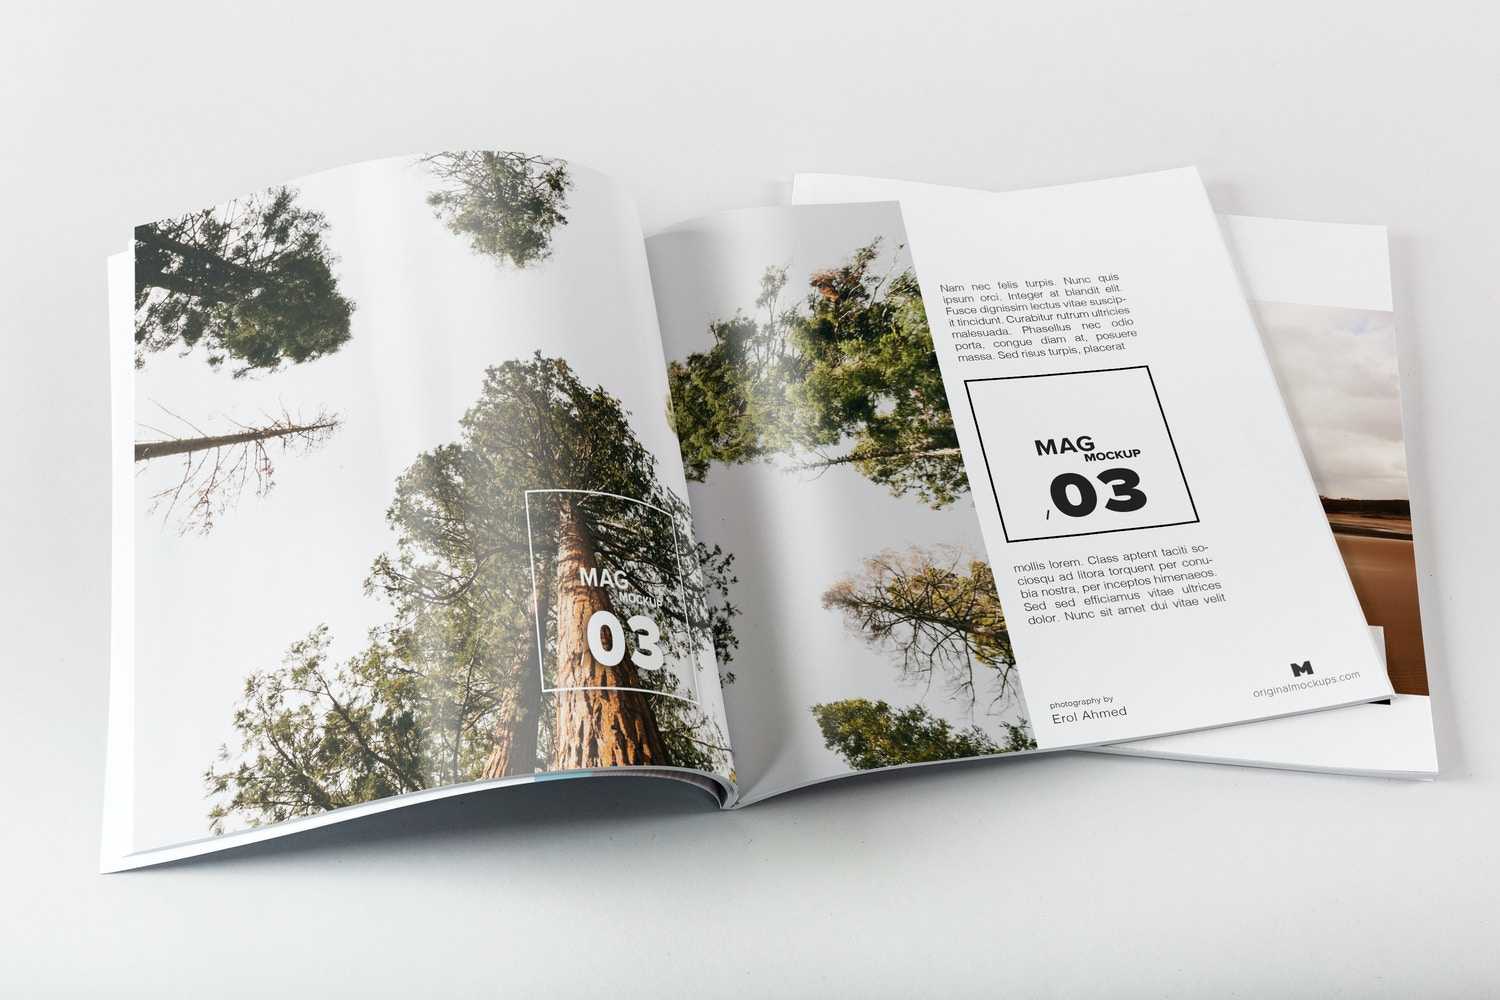 Square Magazine Spread Mockup by Original Mockups on Original Mockups